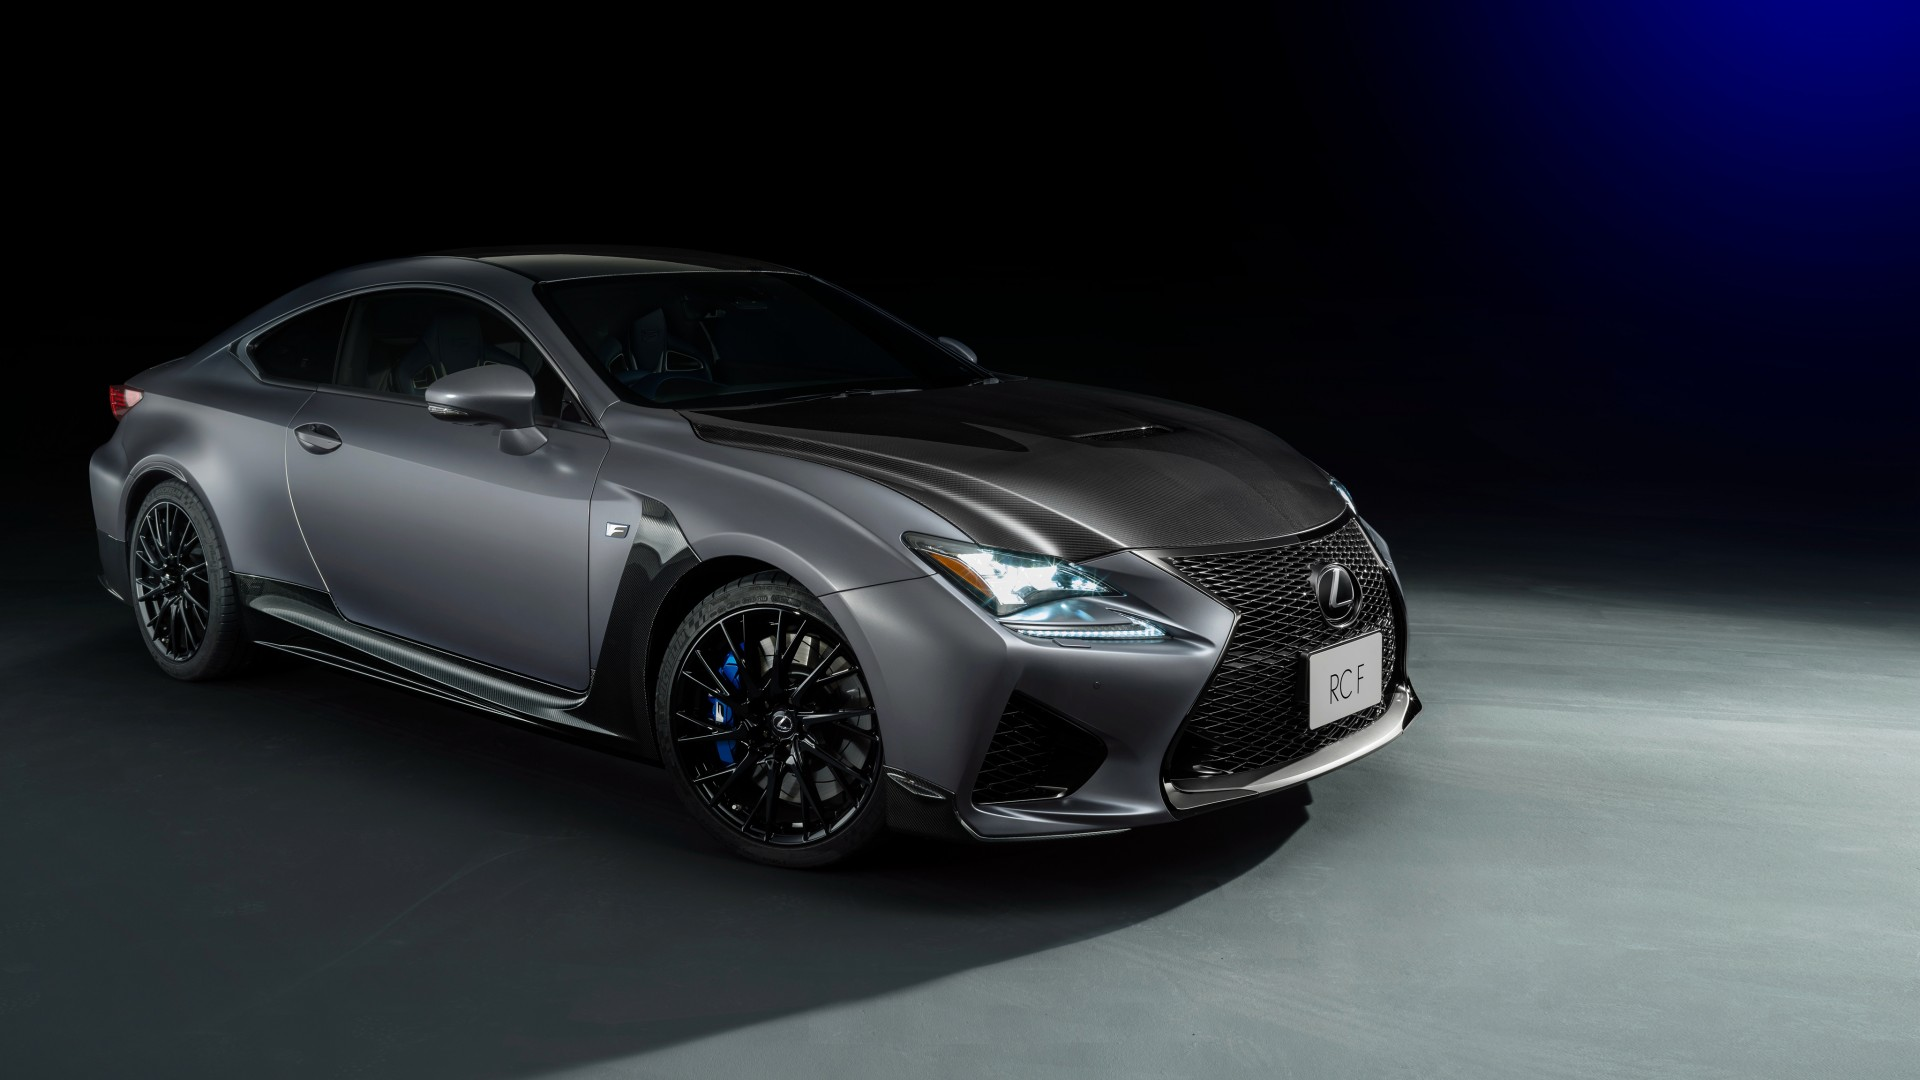 High Quality Car Pictures And Car Wallpapers 2018 Lexus Rc F 10th Anniversary Limited Edition 4k